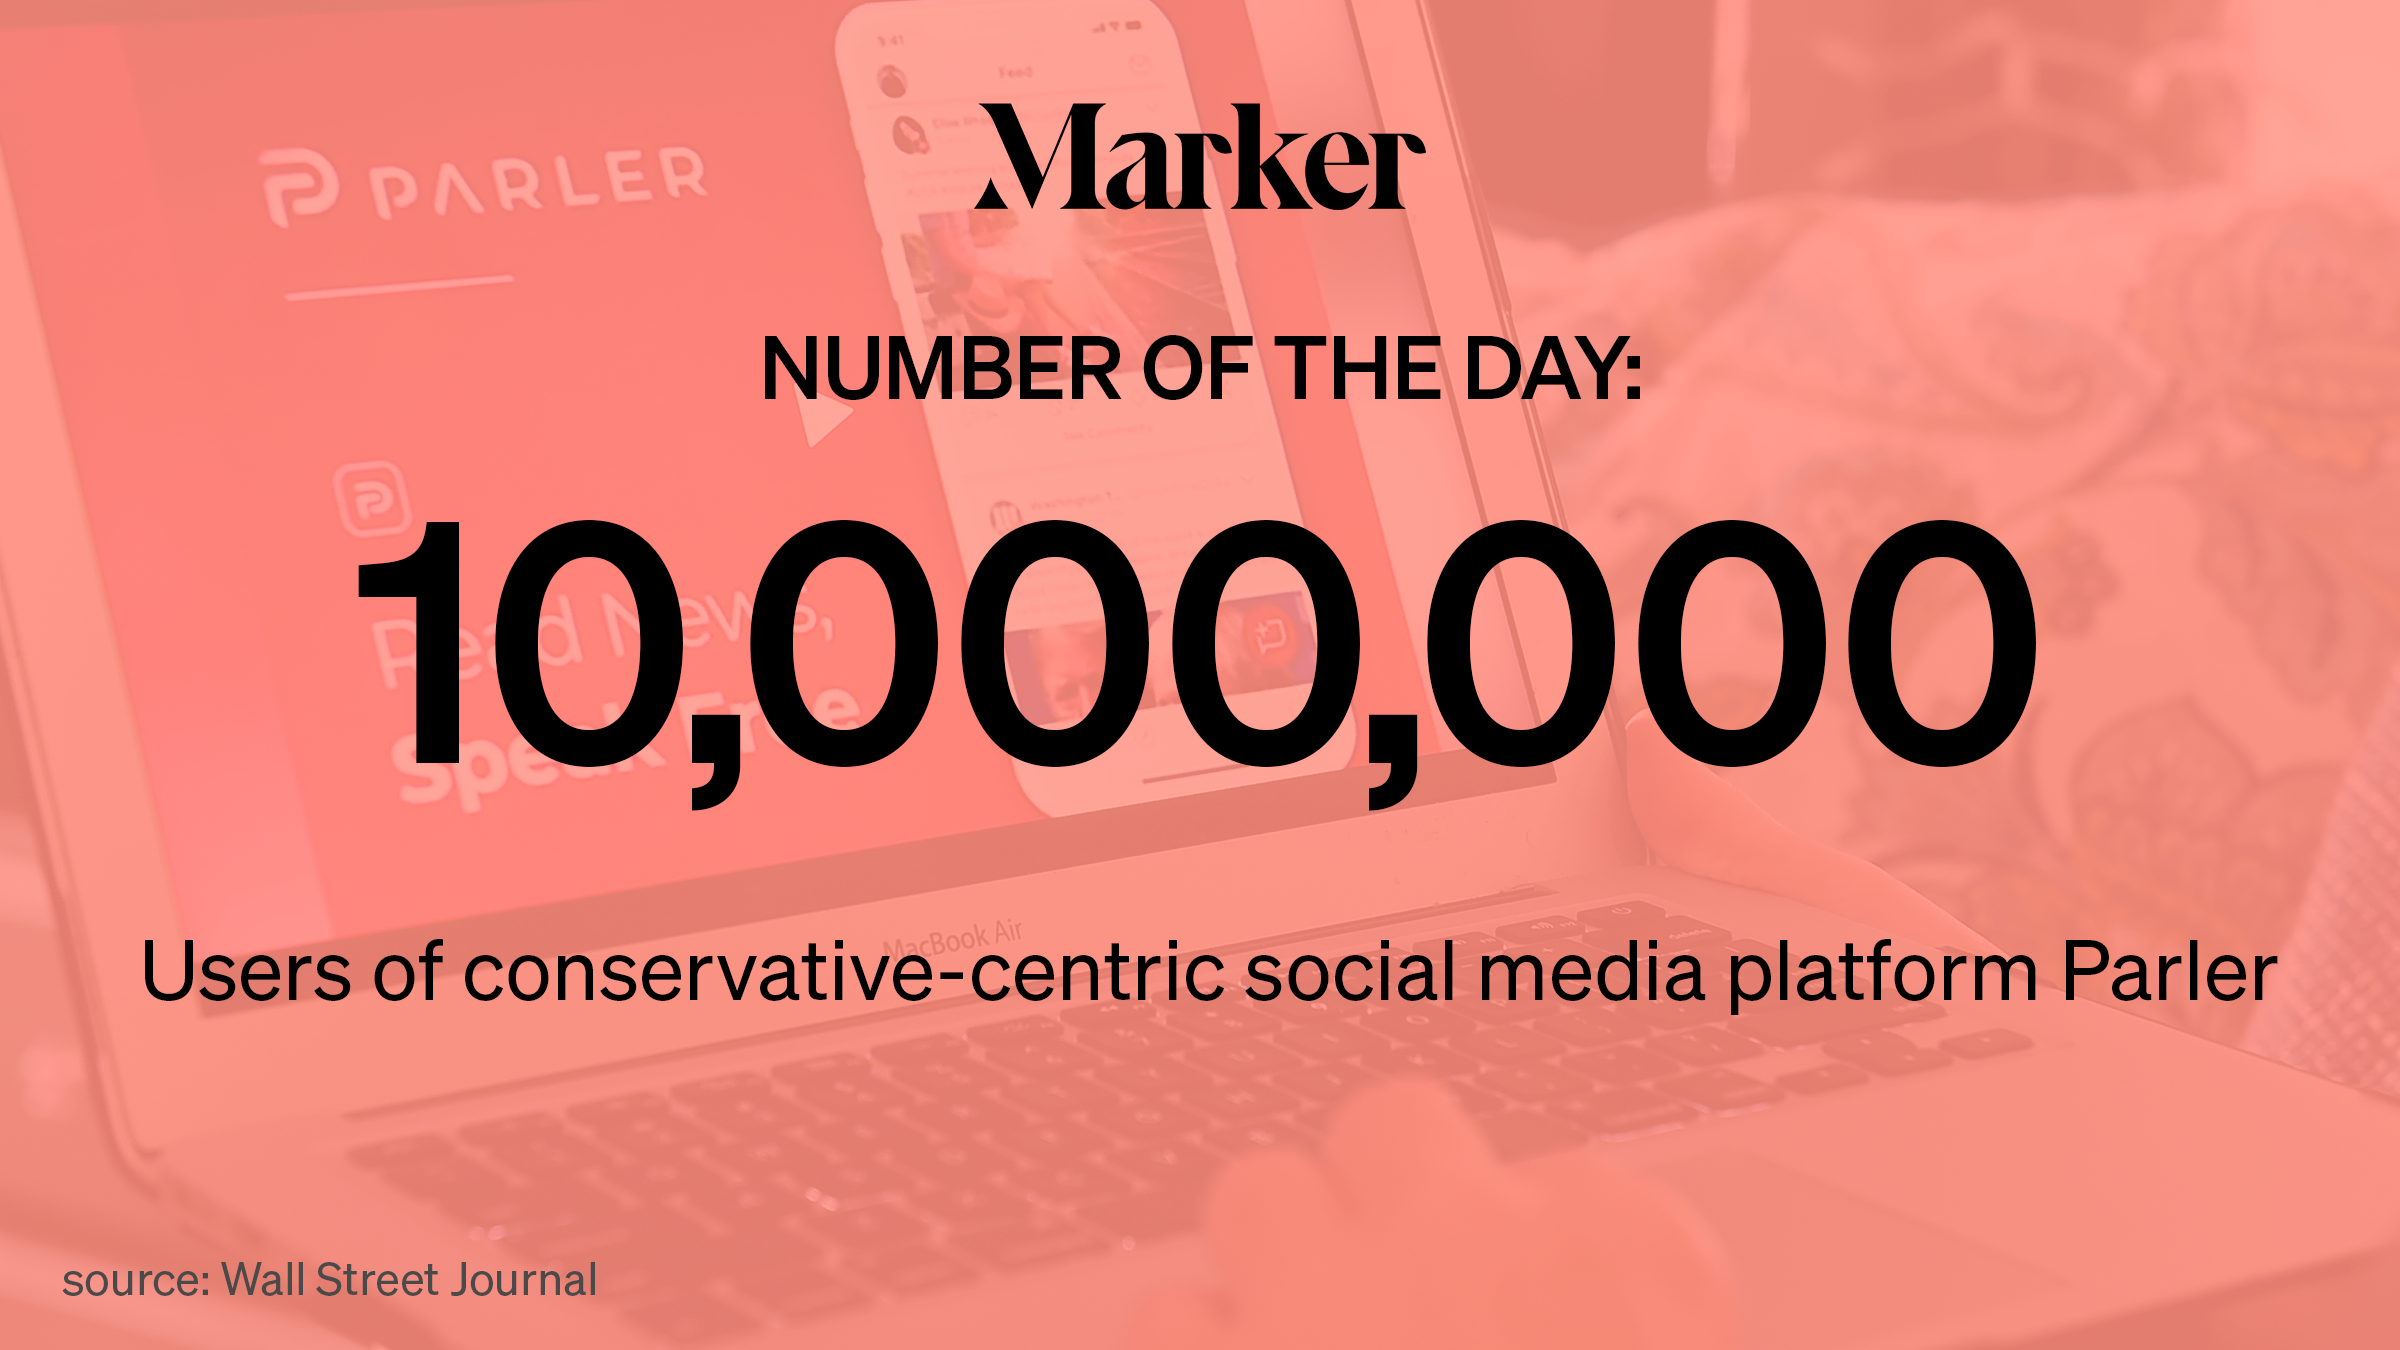 Parler The Social Network Popular With Conservatives Has Doubled Its Users In The Past Week Marker